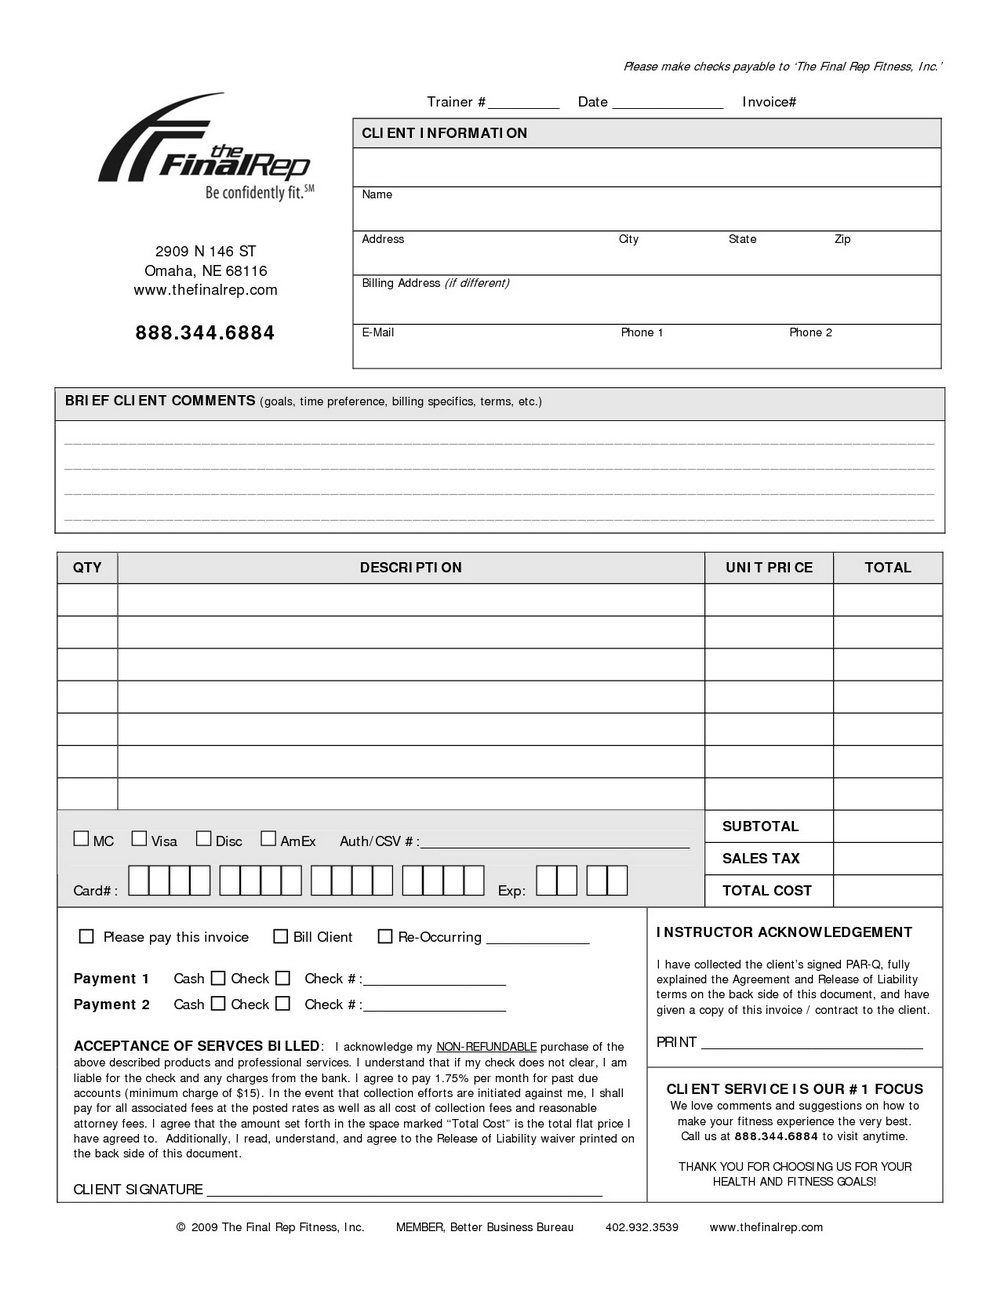 Training Invoice Template Doc